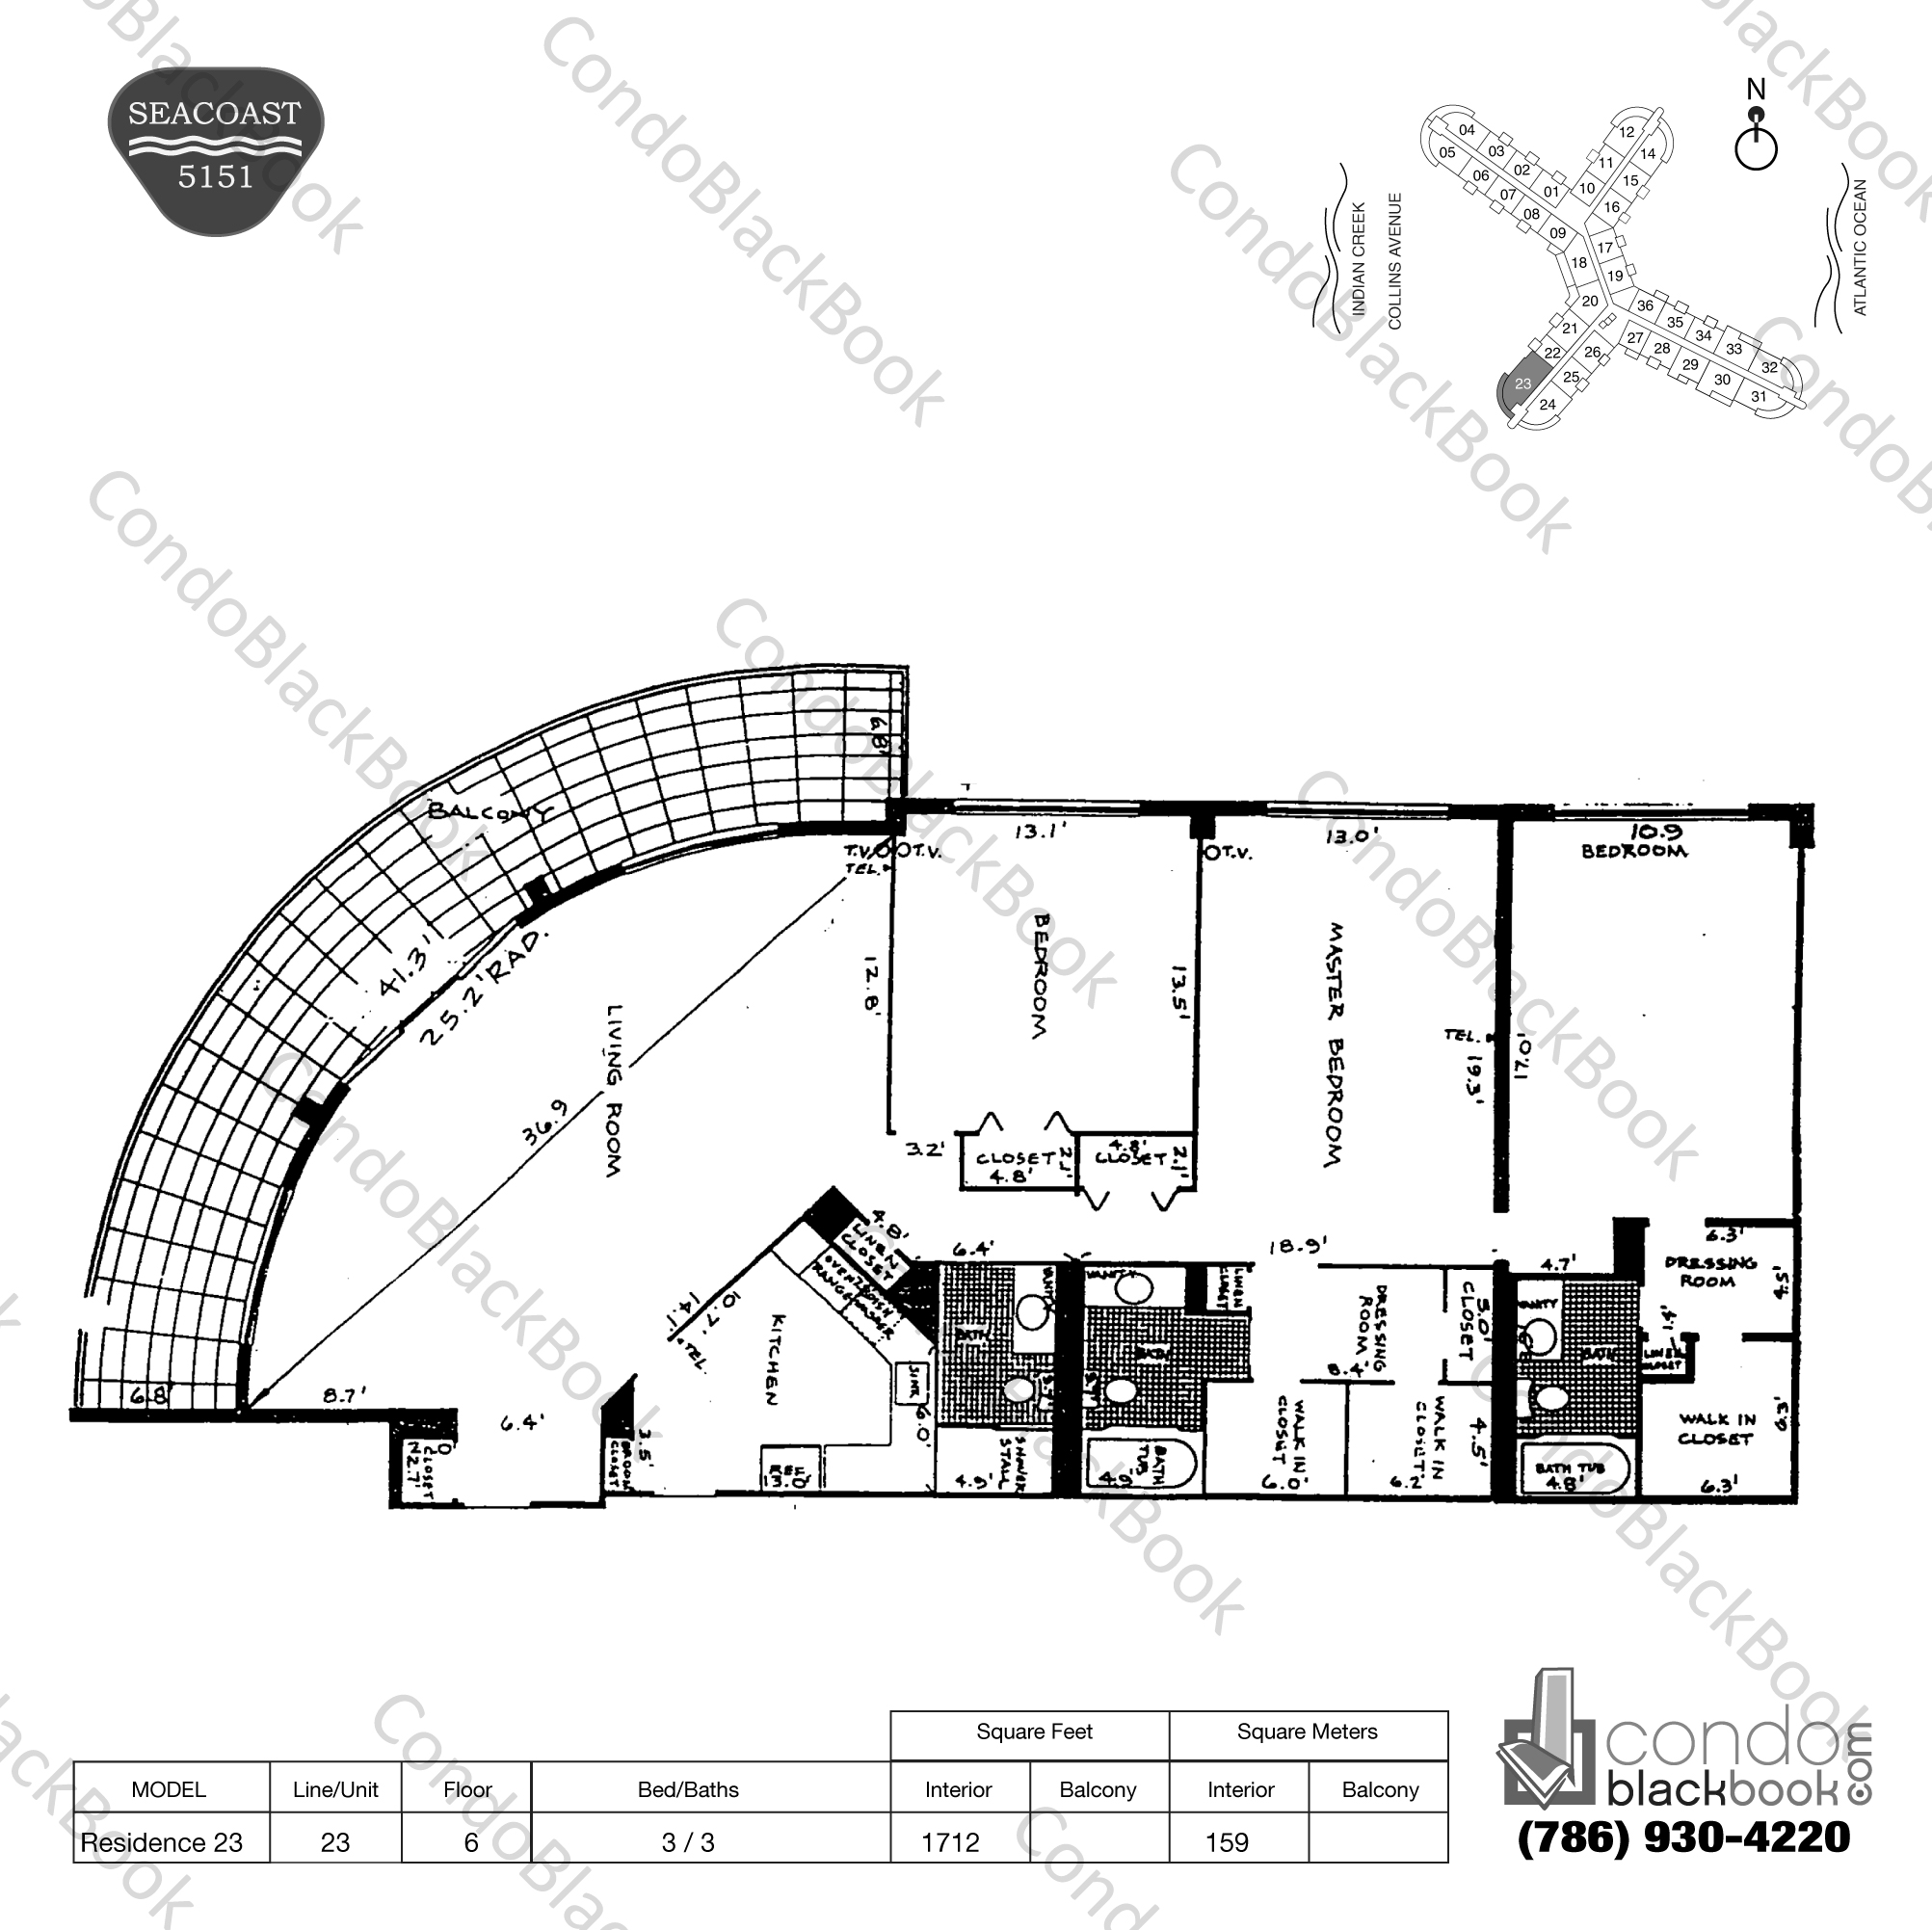 Floor plan for Seacoast 5151 Mid-Beach Miami Beach, model Residence 23, line 23, 3 / 3 bedrooms, 1712 sq ft